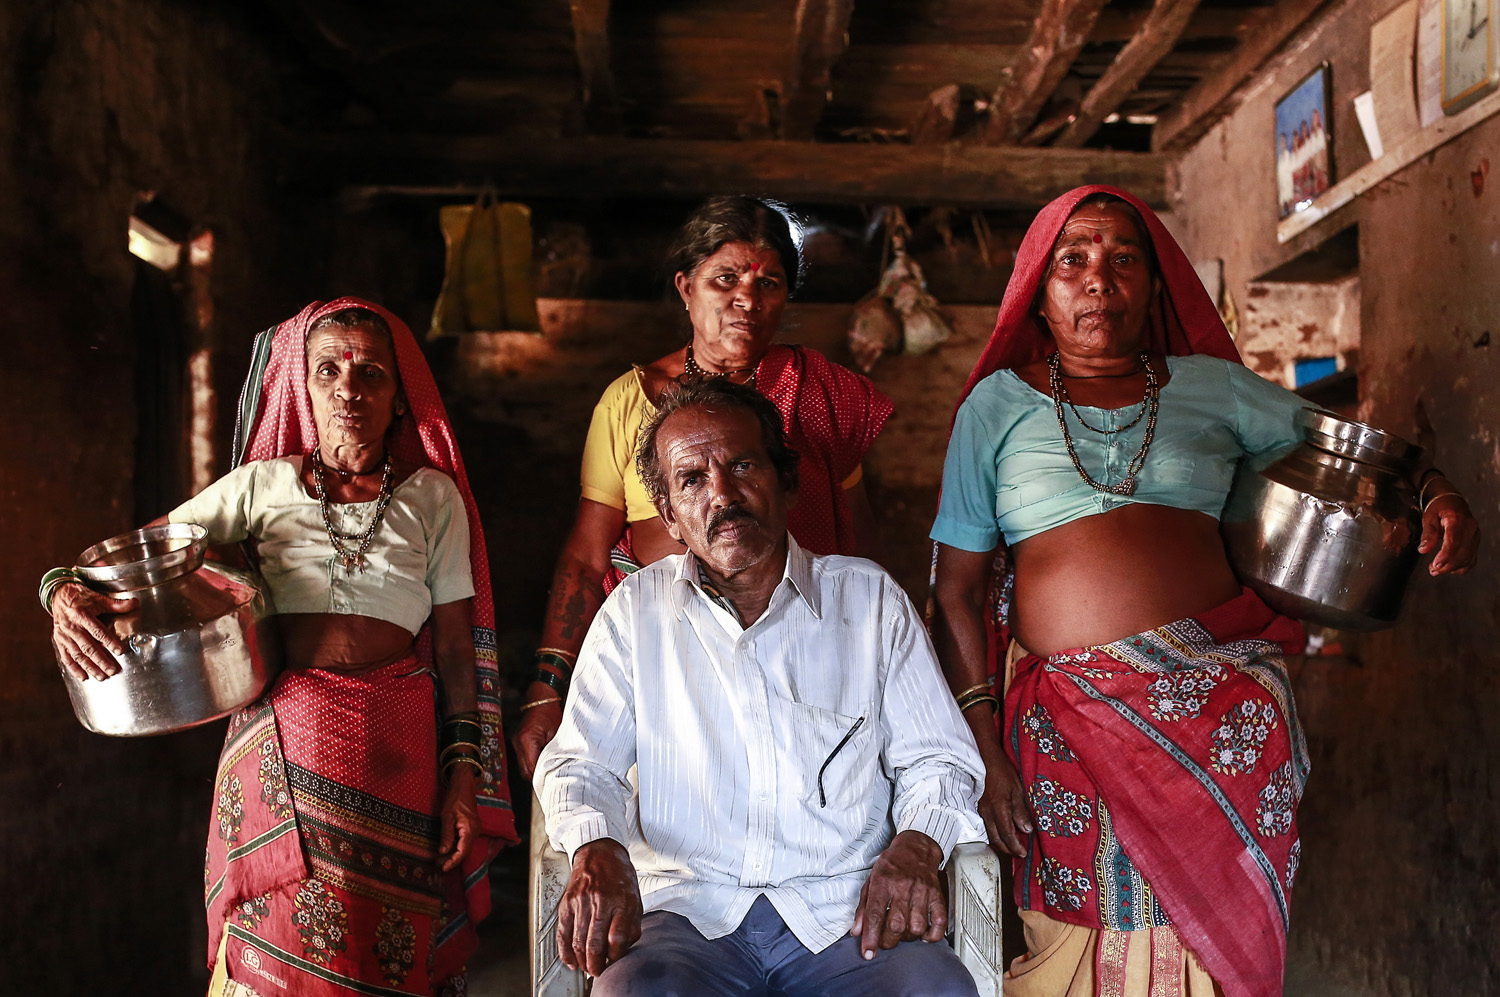 Sakharam Bhagat poses with his wives, Sakhri, Tuki and Bhaagi (L to R) inside their house.